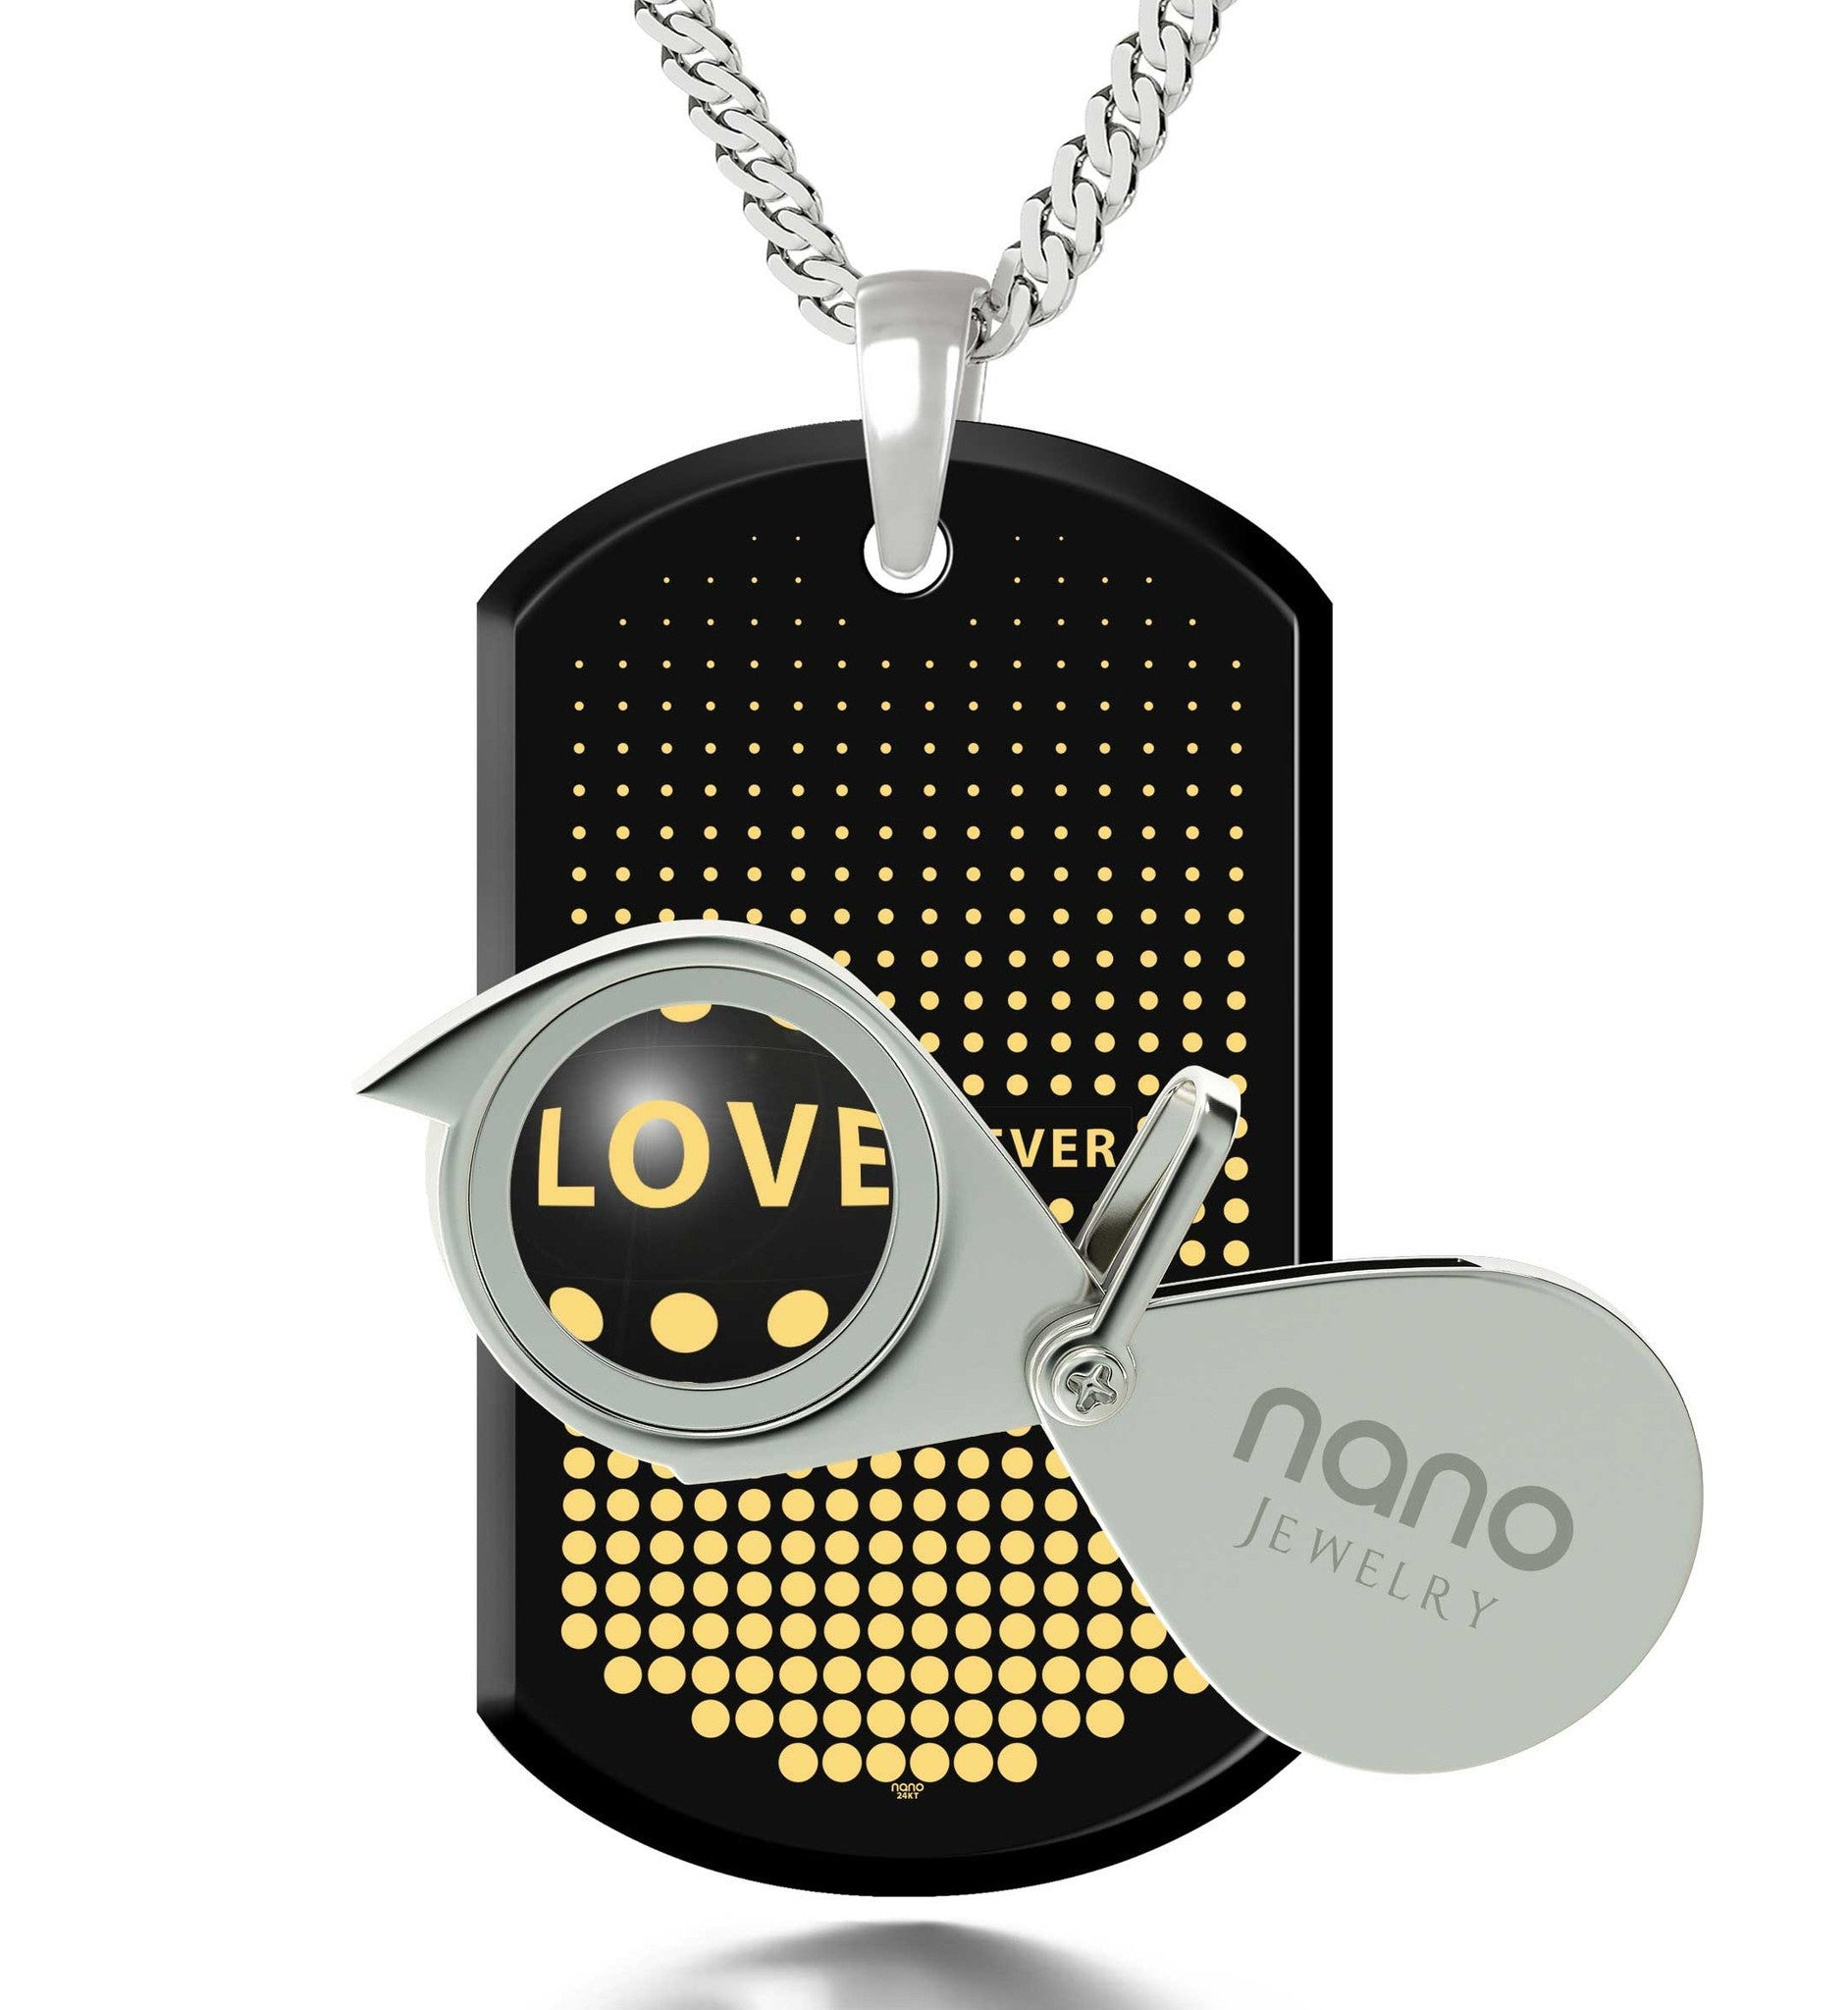 Christmas Ideas for Guys, Meaningful White Gold Necklace, What to Give Your Boyfriend for Valentines Day, Nano Jewelry